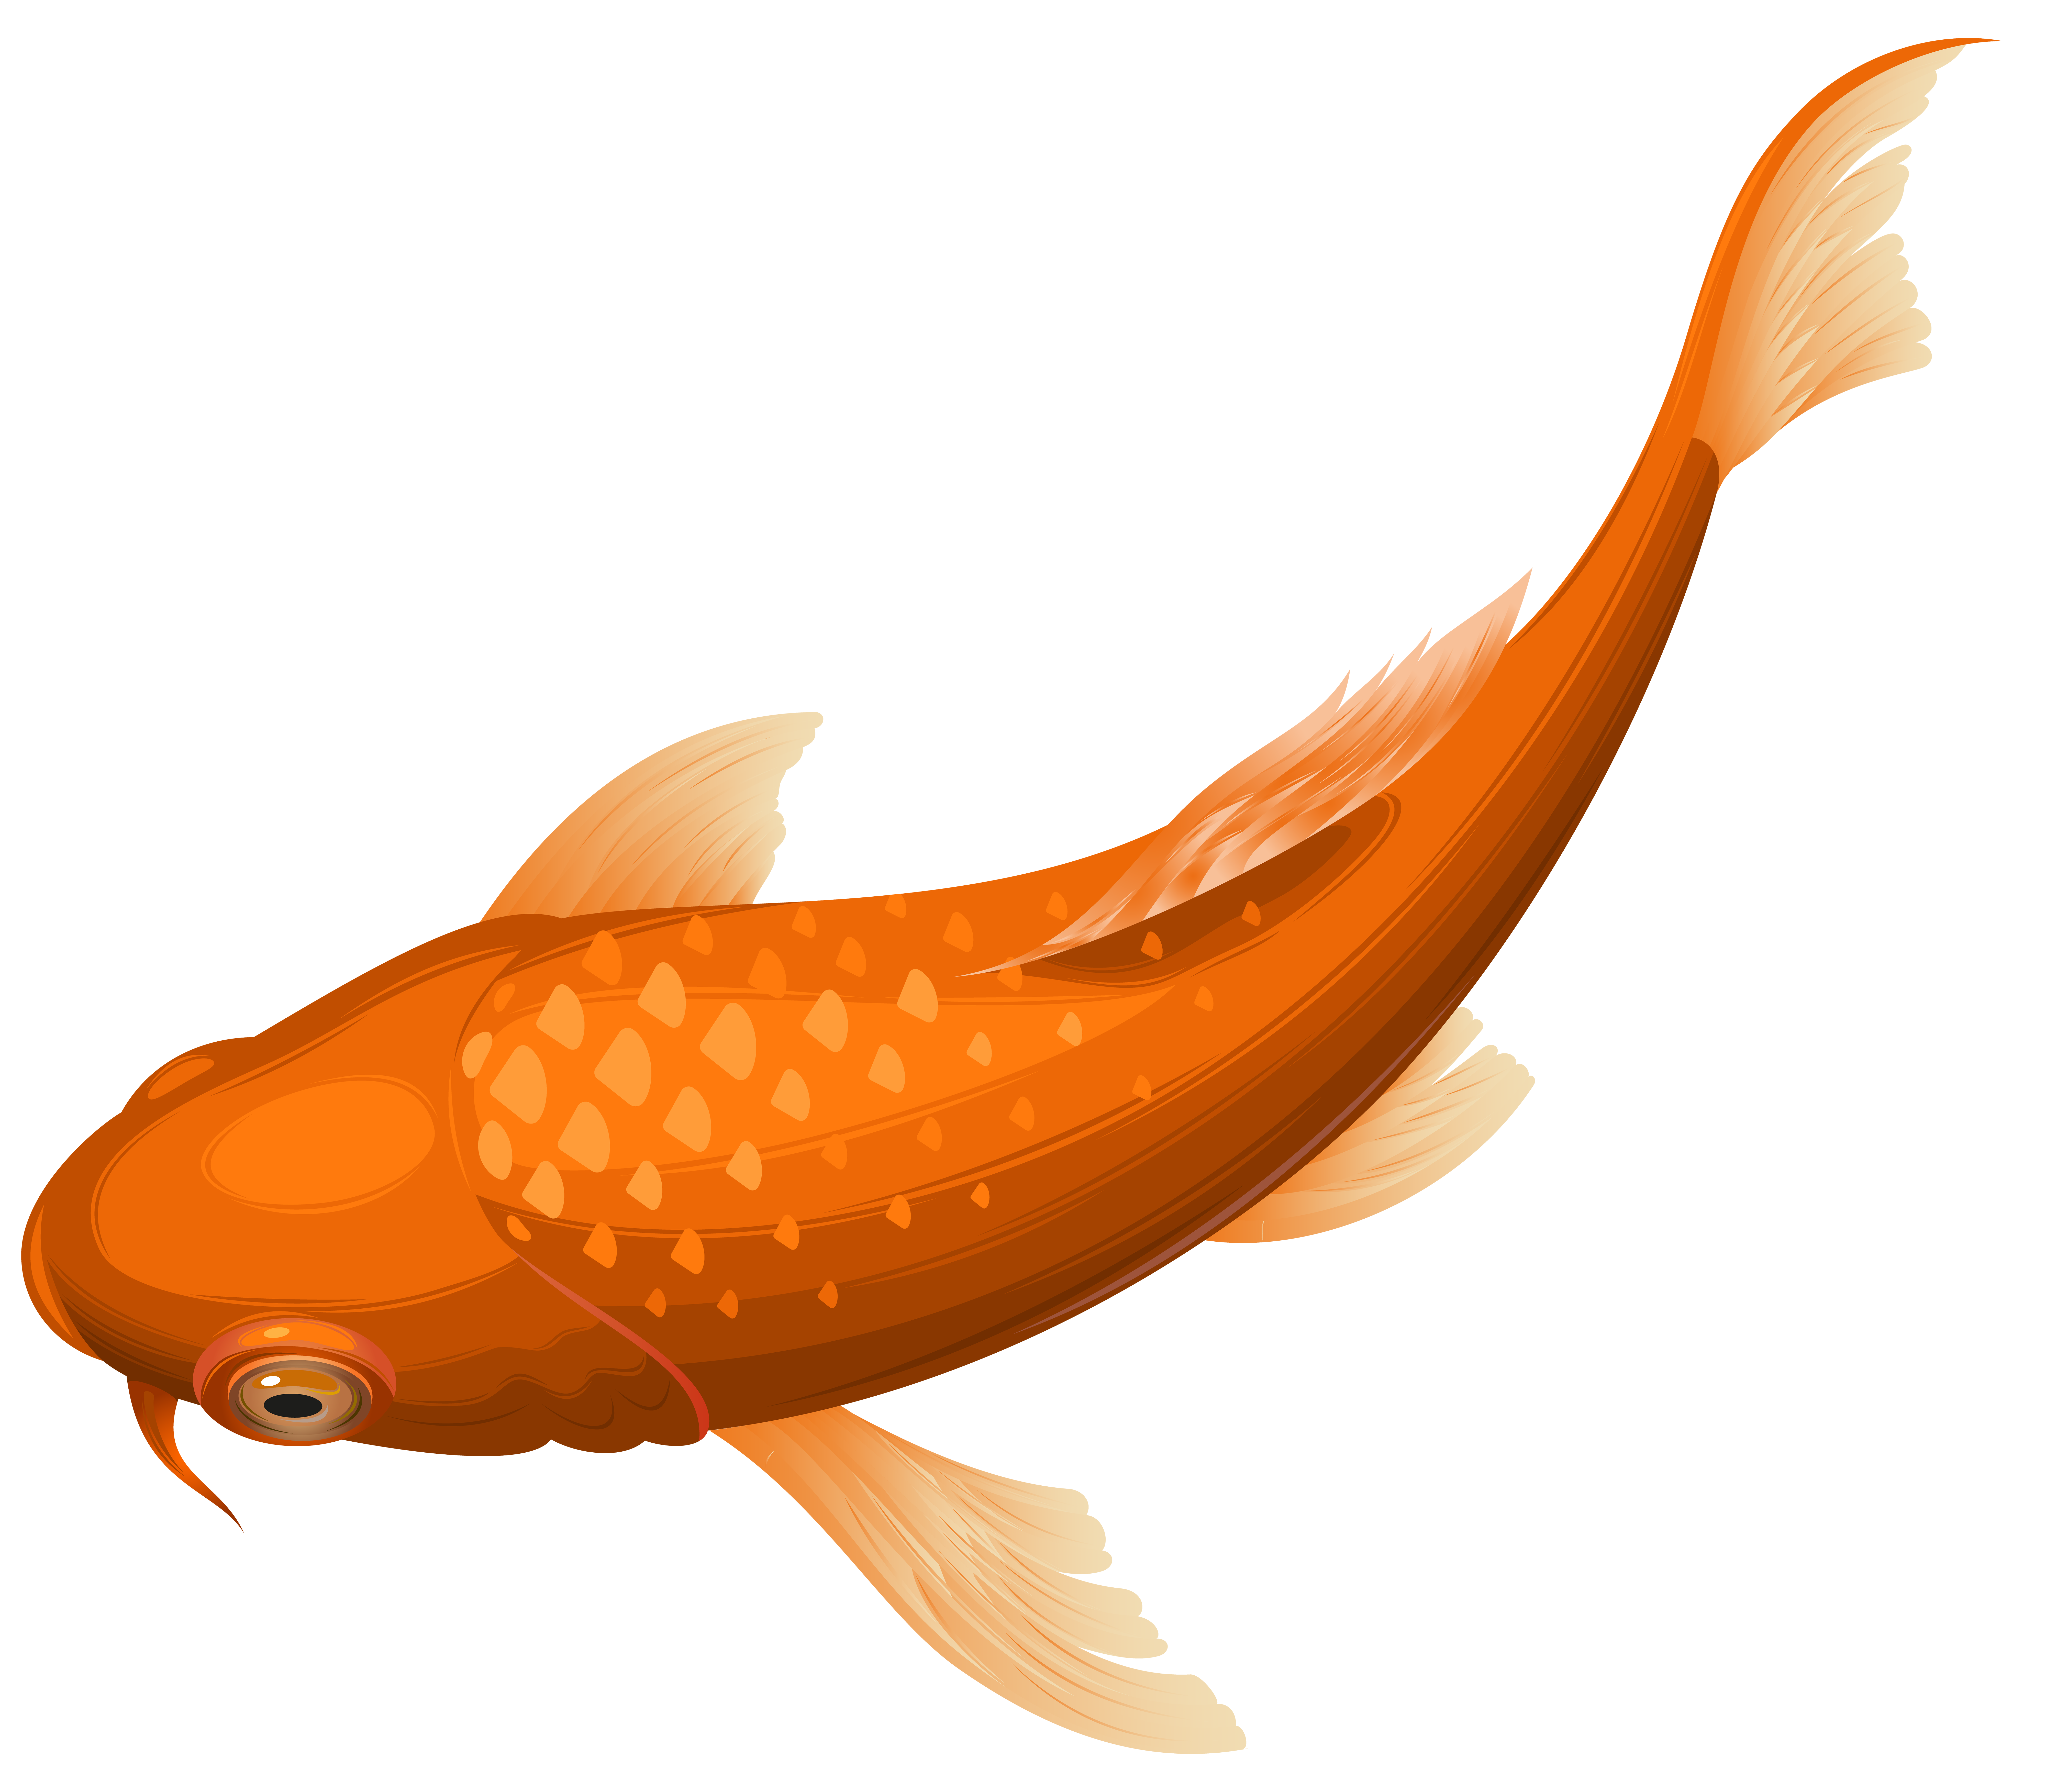 Pond fish clipart clipart free Orange Koi Fish Transparent Clip Art PNG Image | Gallery ... clipart free